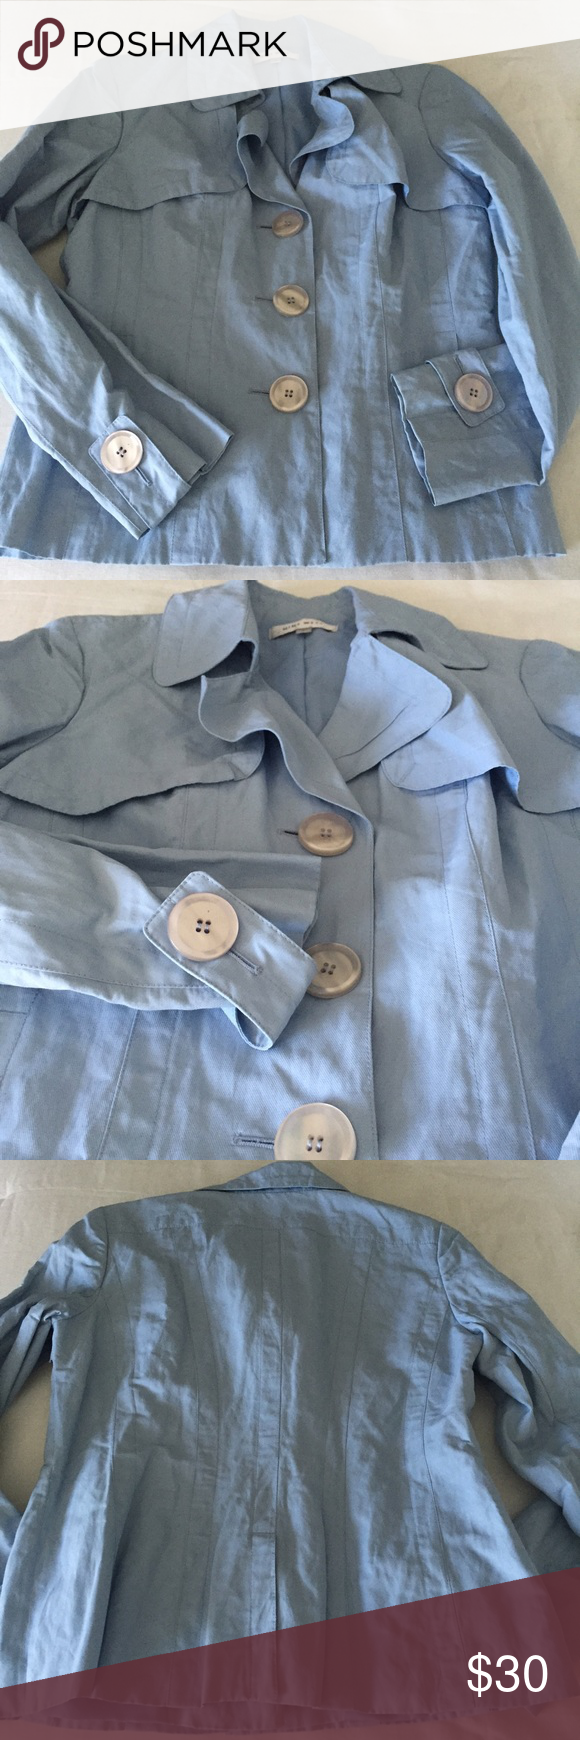 🆕 Nine West NWOT pea coat size small NWOT Nine West periwinkle blue lightweight pea coat with large buttons in size small 🆕 no trades 🆕 offers encouraged!💕 🆕 bundles 2+ items 10% off  🔹bundle price recently changed to lower prices/ acceptable offers for my Poshmark friends interested in single items only 🔹 Nine West Jackets & Coats Pea Coats